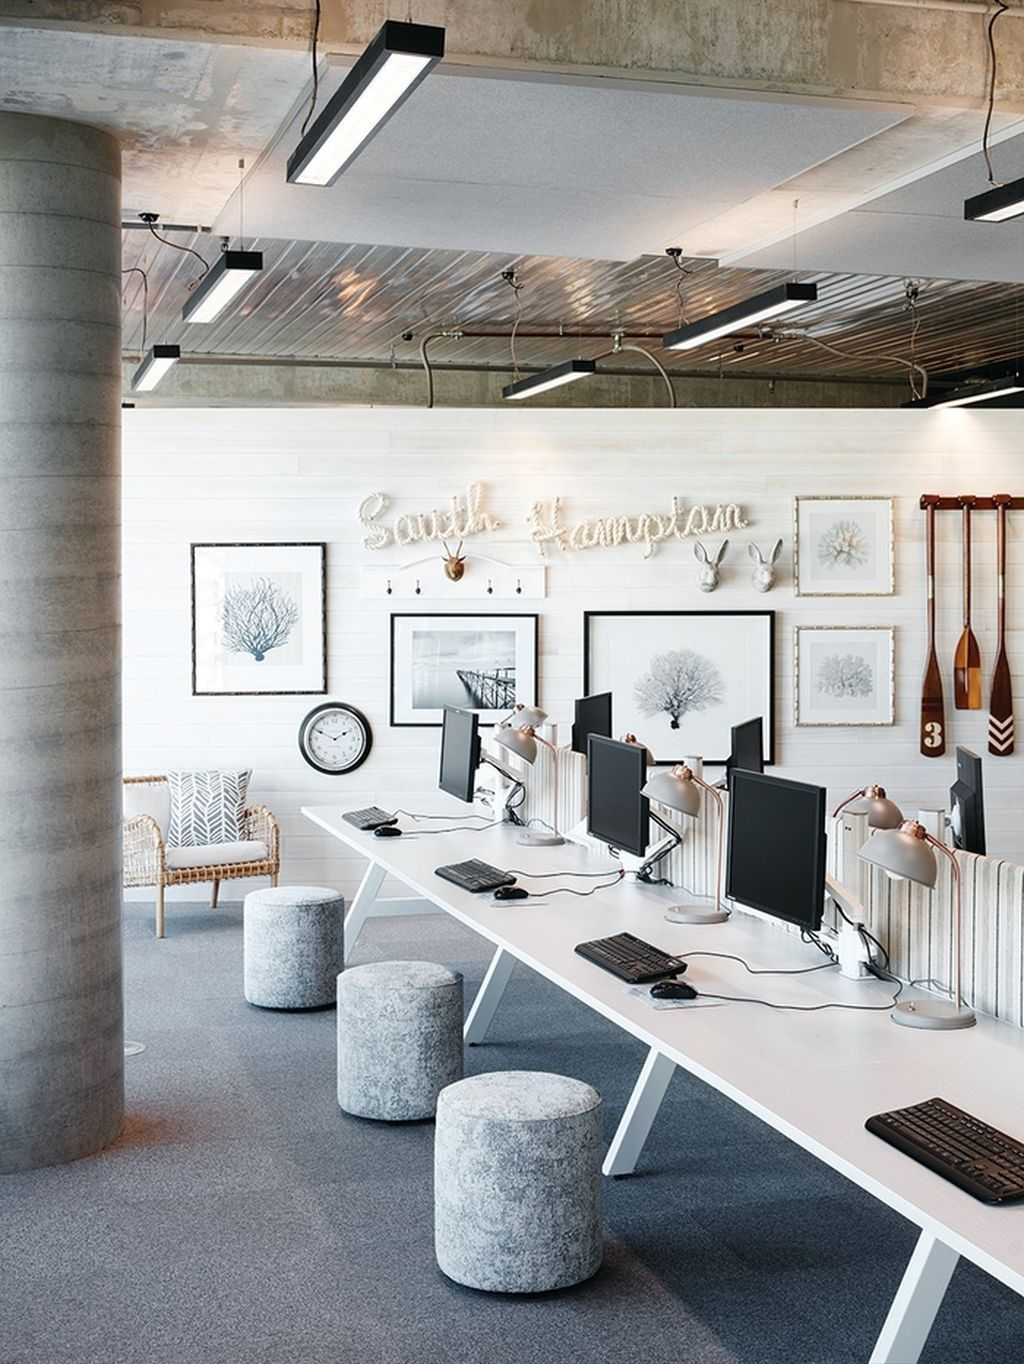 99 modern and cozy office interior design ideas to makes you feel comfortable http